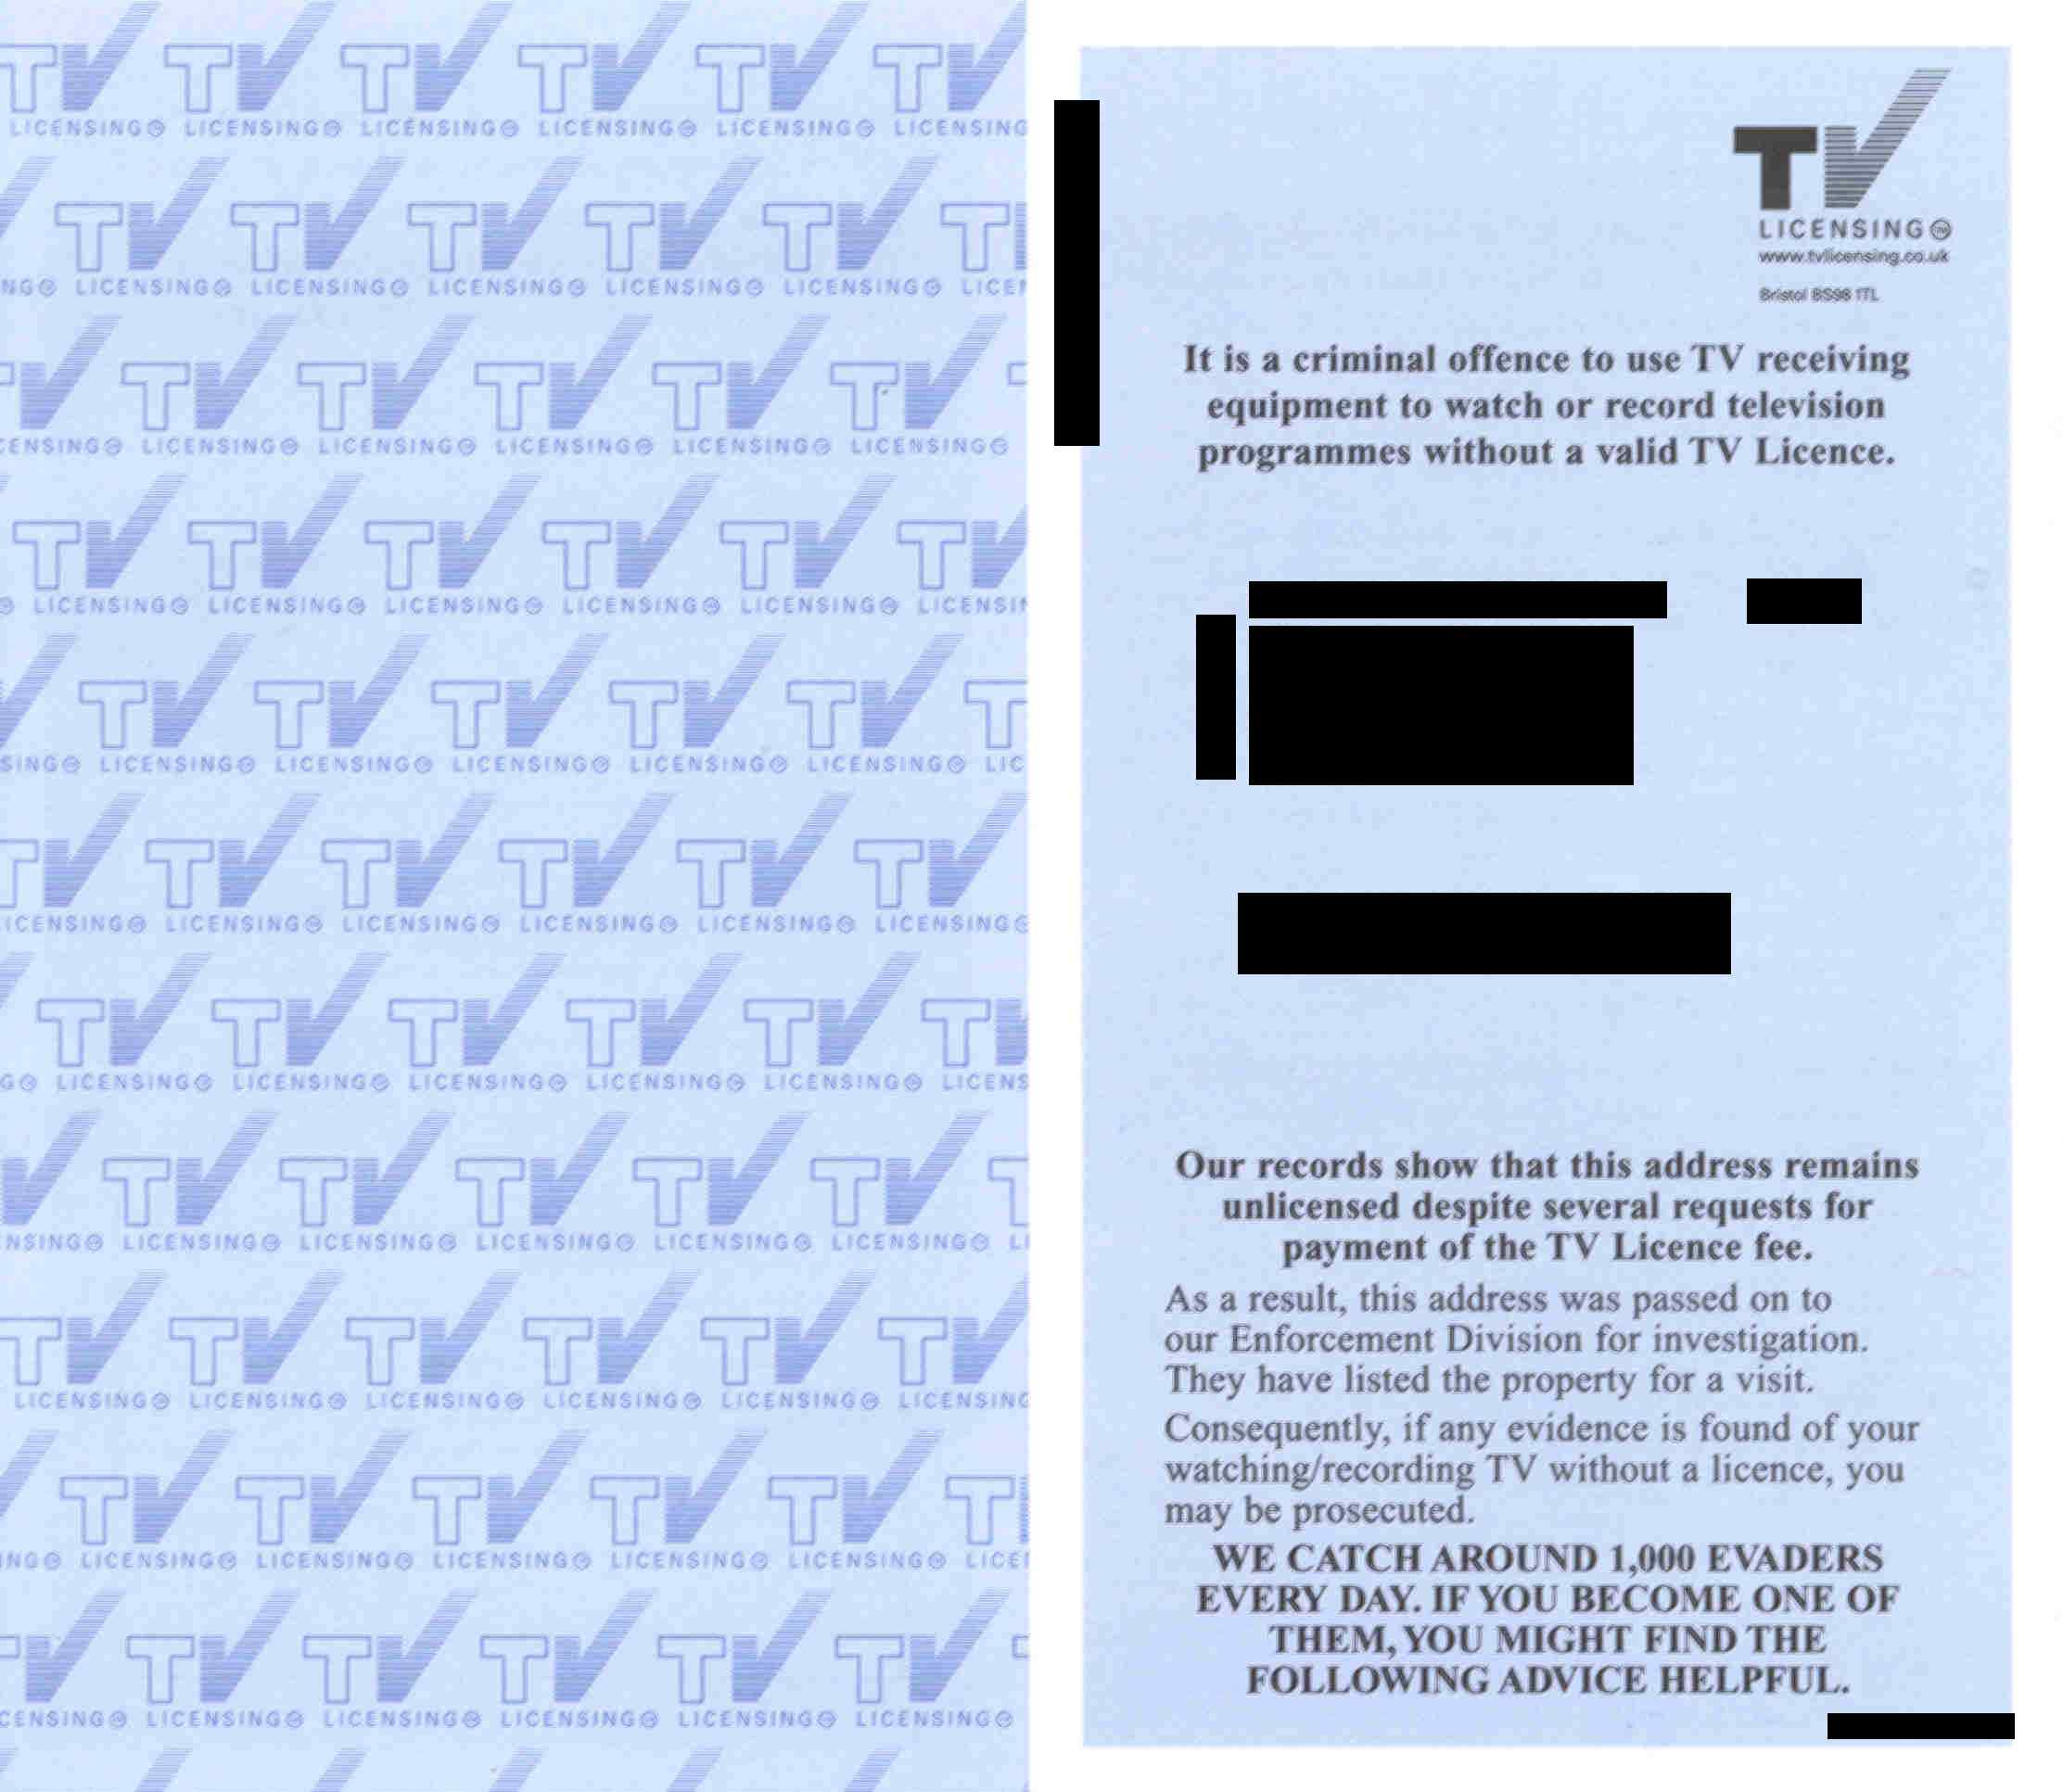 tv Licensing leaflet